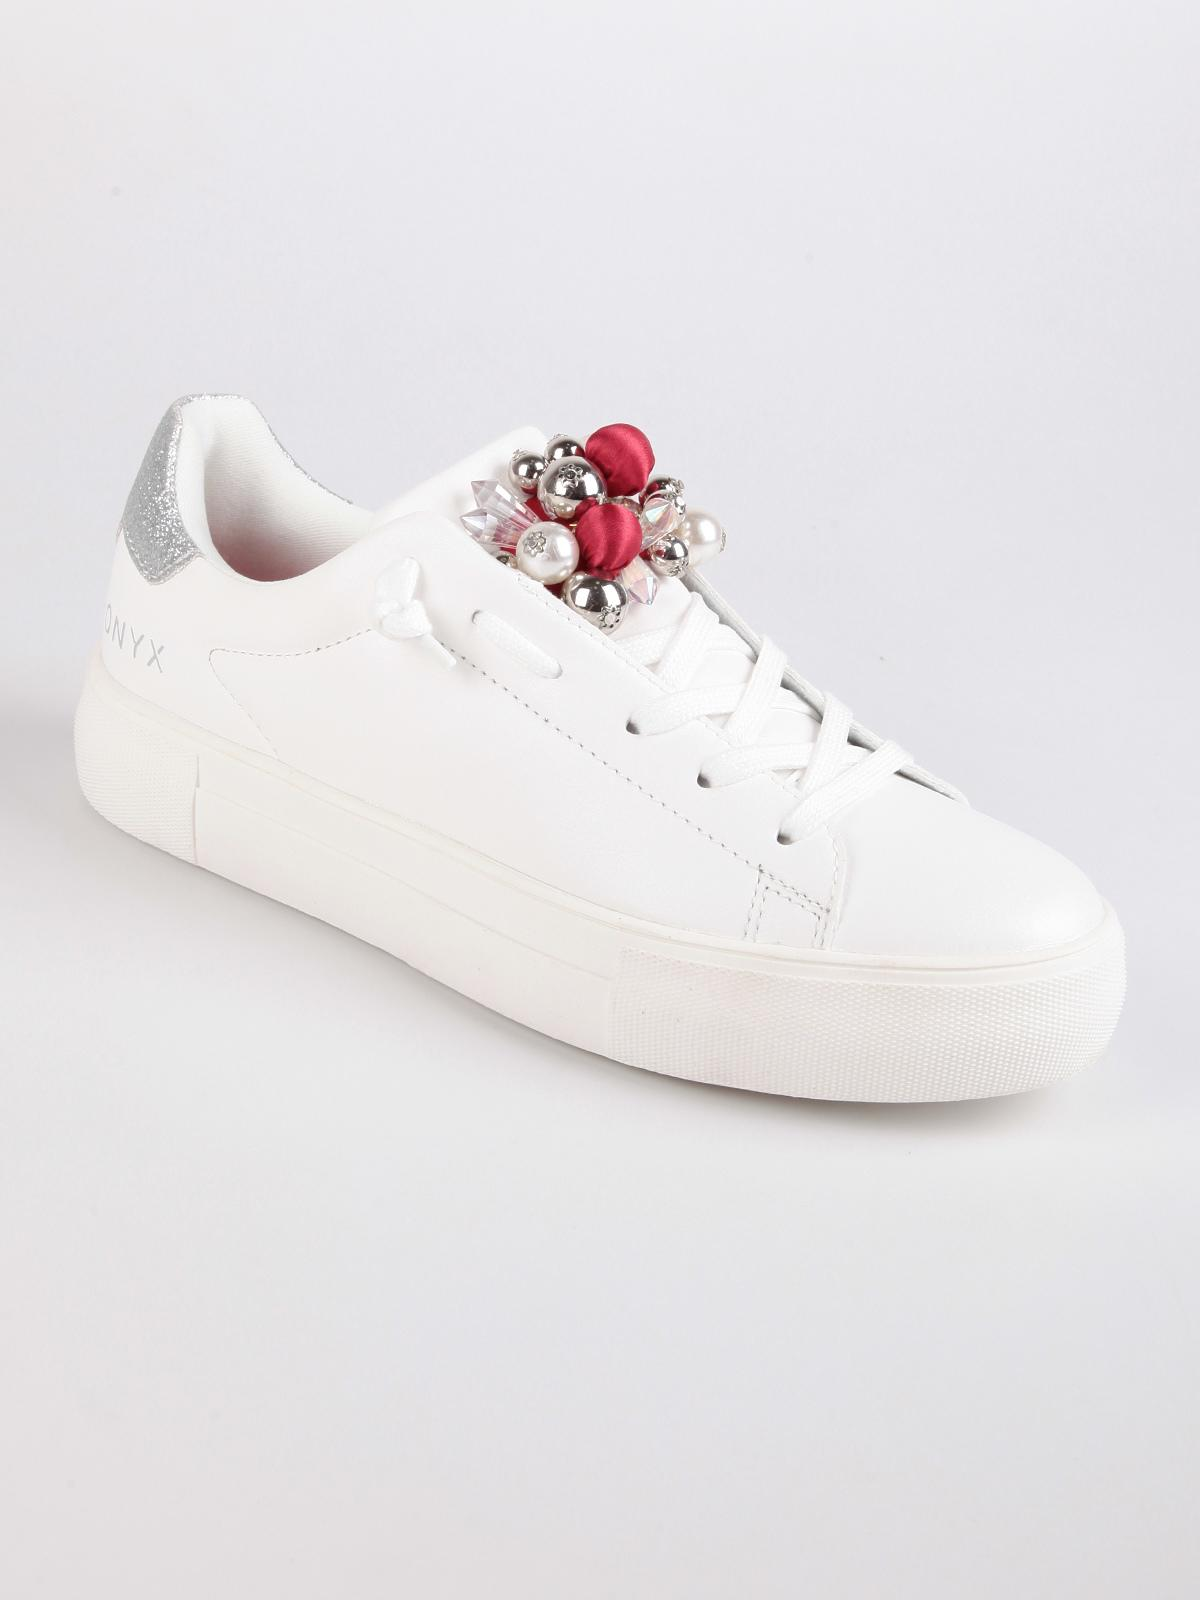 Strass Borchie Basse E Bianche Con Sneakers OnyxMecshopping R54jAL